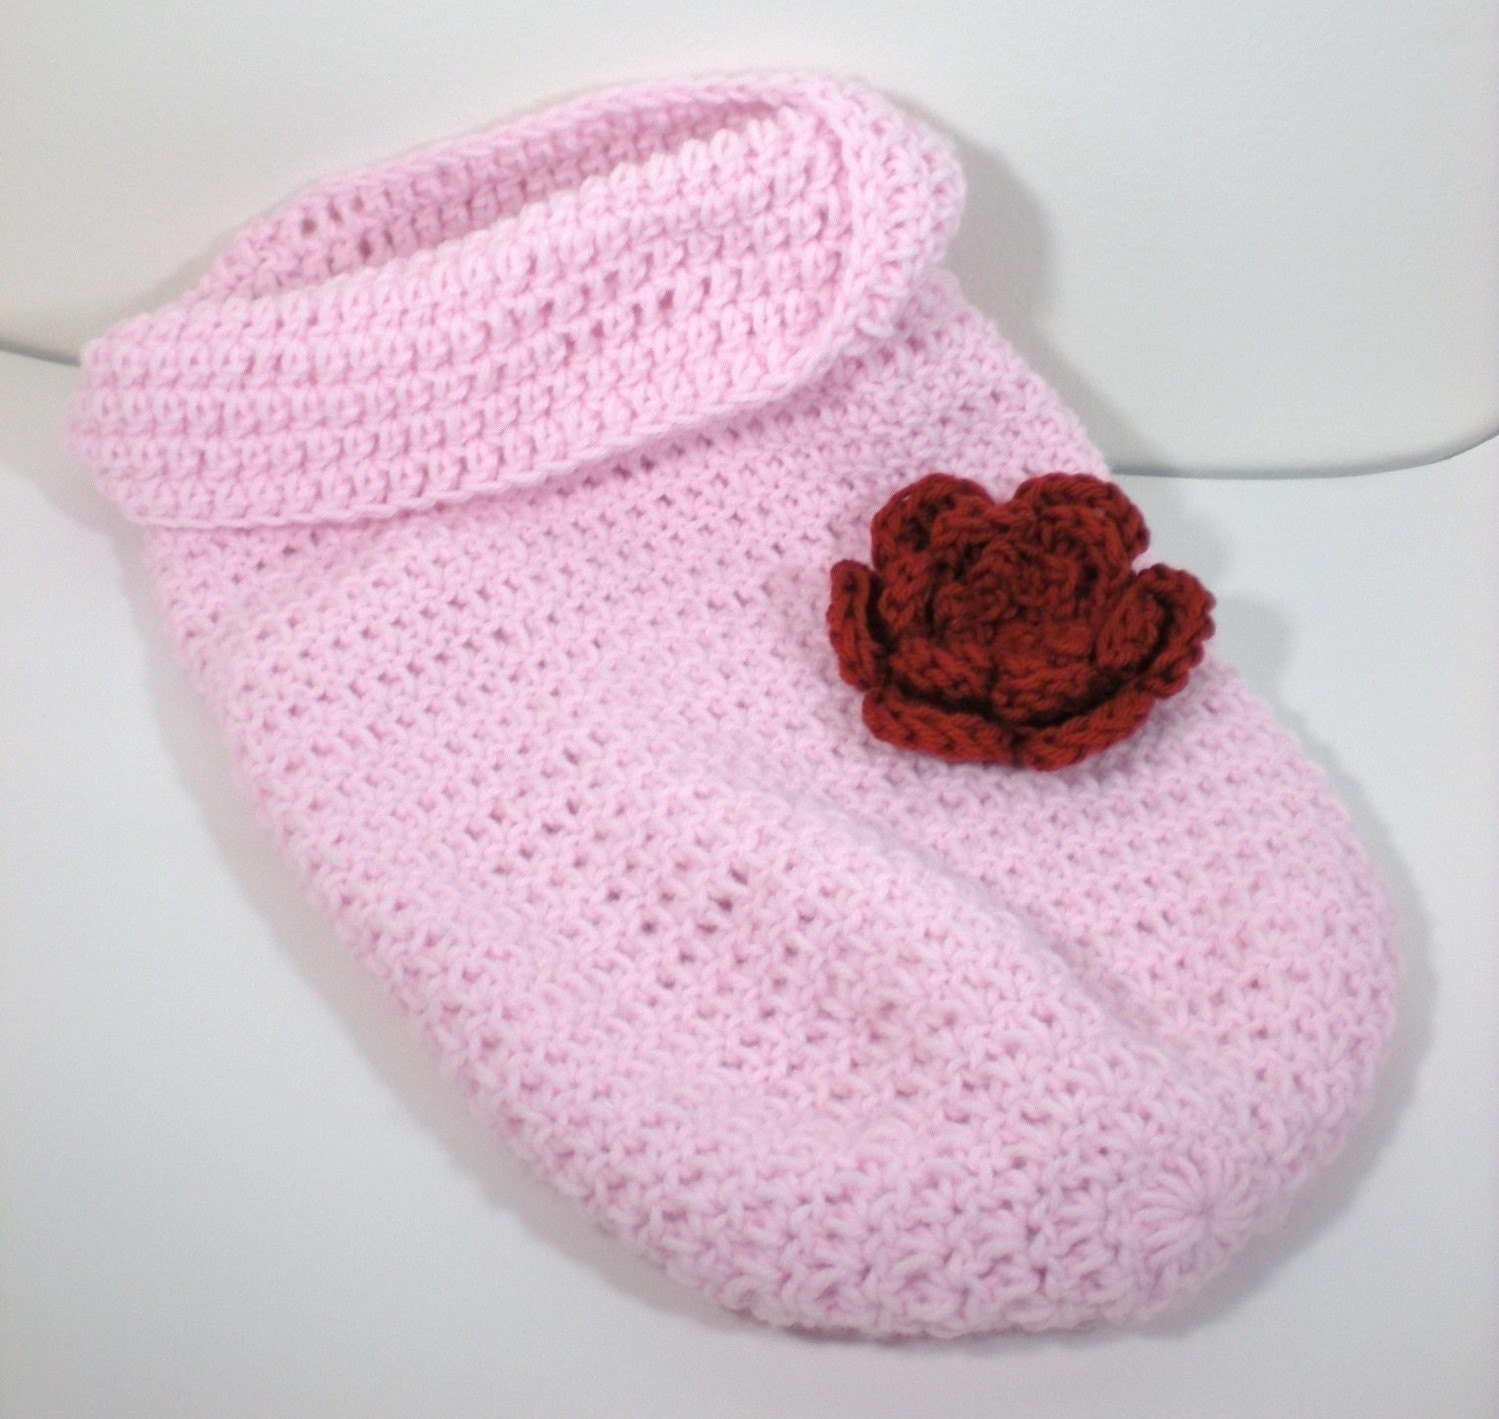 Crochet Baby Cocoon Pattern | Patterns Gallery